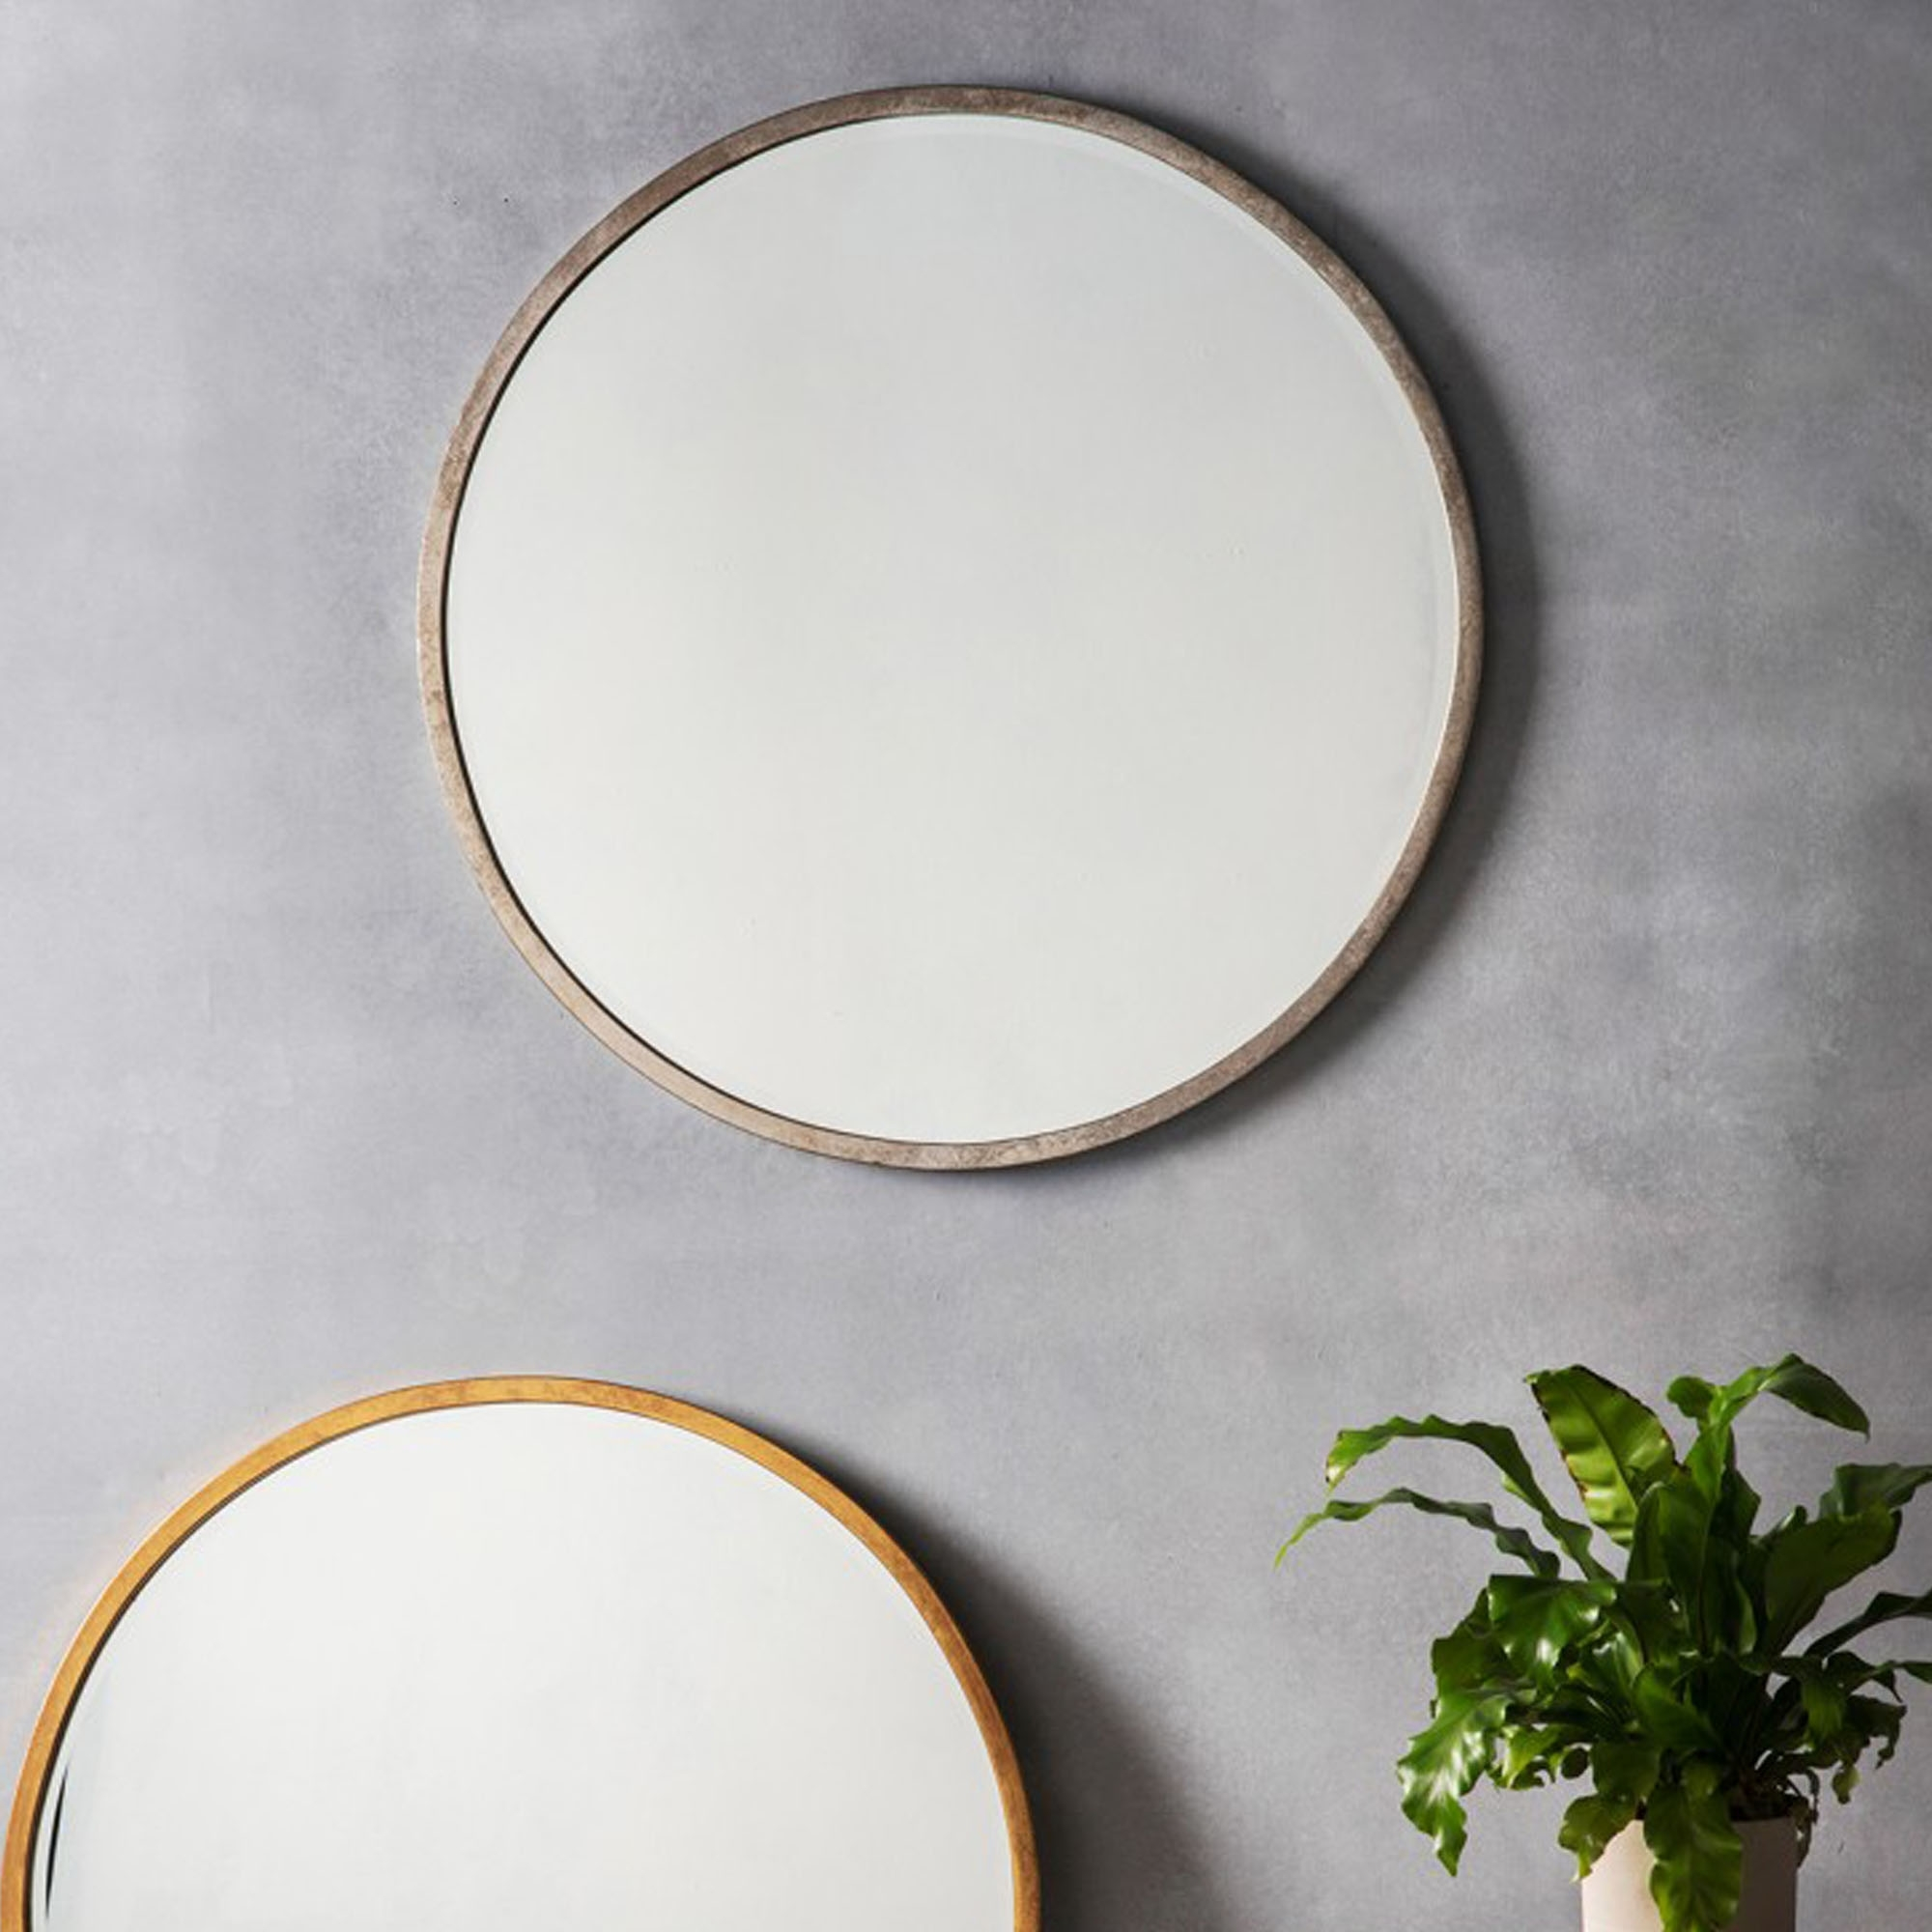 Fullsize Of Round Wall Mirror